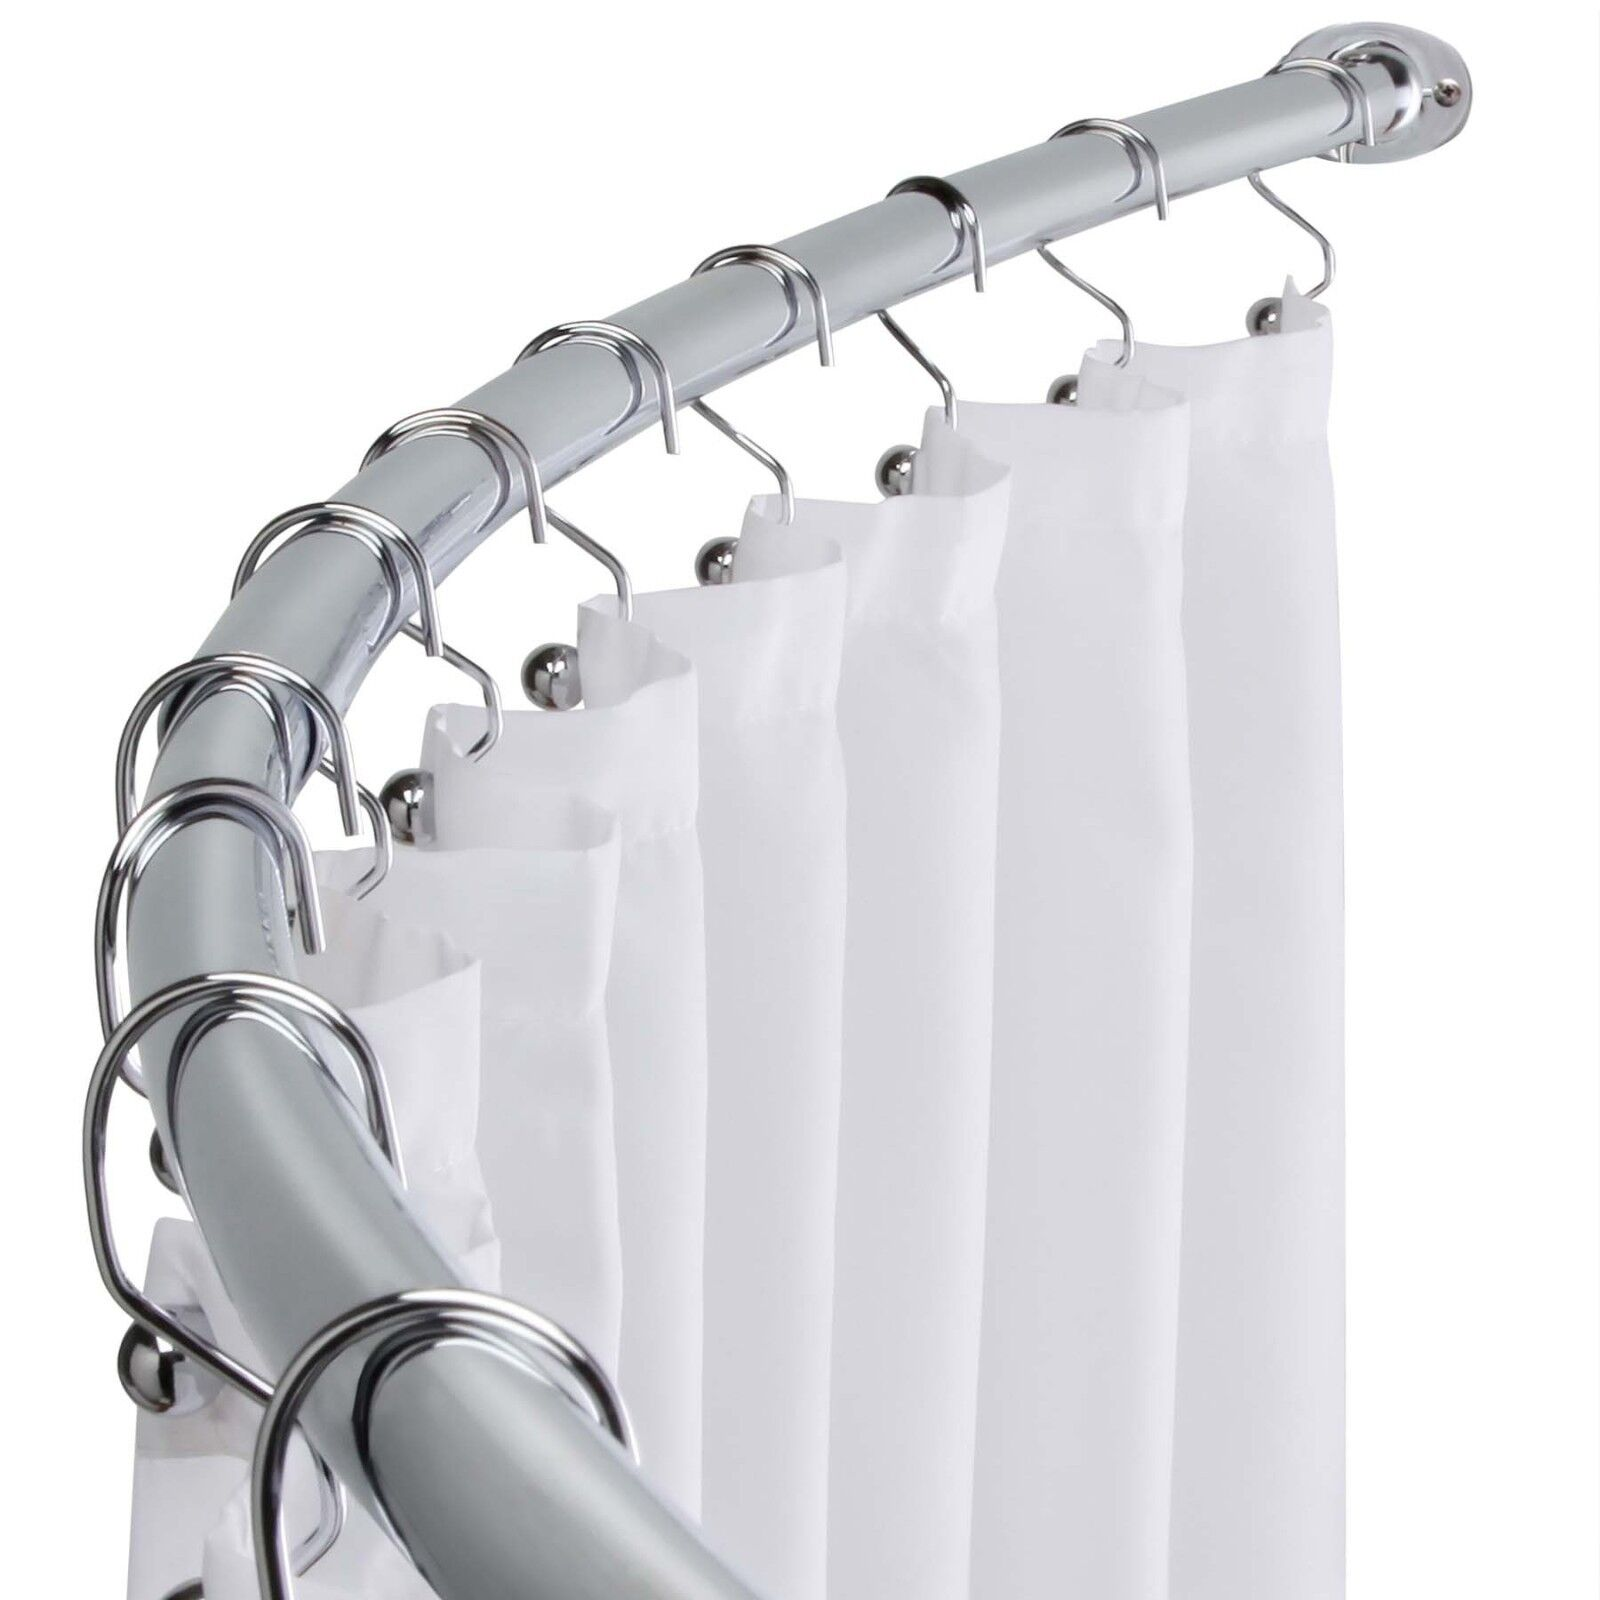 Polished Chrome Adjustable Bathroom Curved Shower Curtain Rod 60 To 72